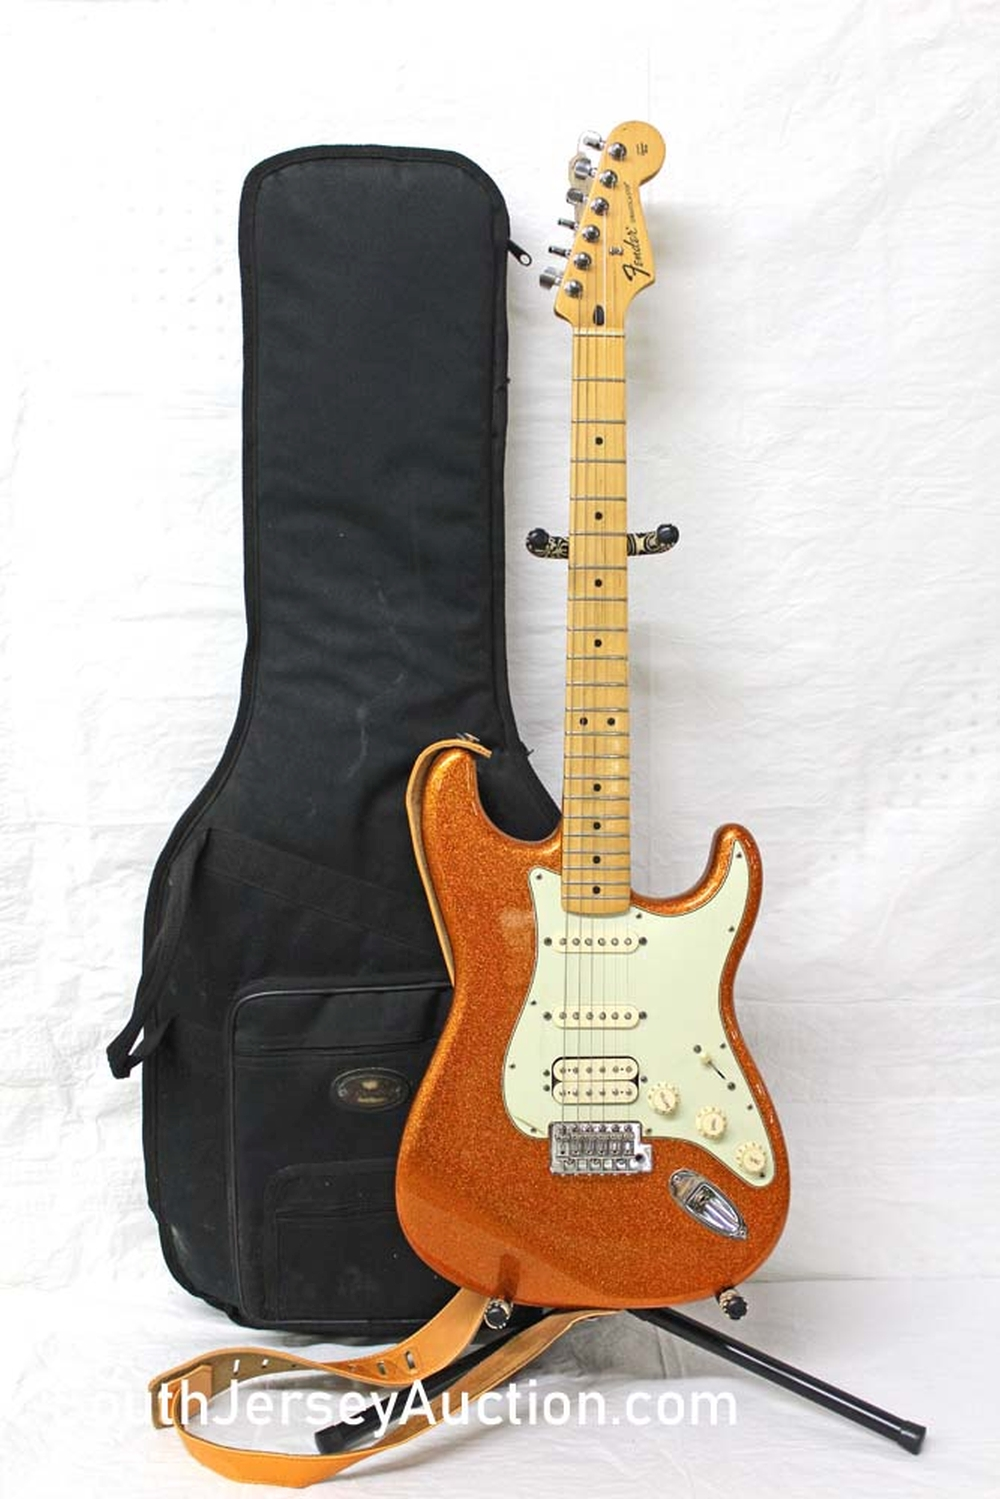 2010 Fender Special Run, Made in Mexico, Stratocastar, Limited Edition in the gold metallic s/n mx10151684, double single single pickups, maple neck, plastic still on pick guard, with soft gig bag, perfect - excellent condition